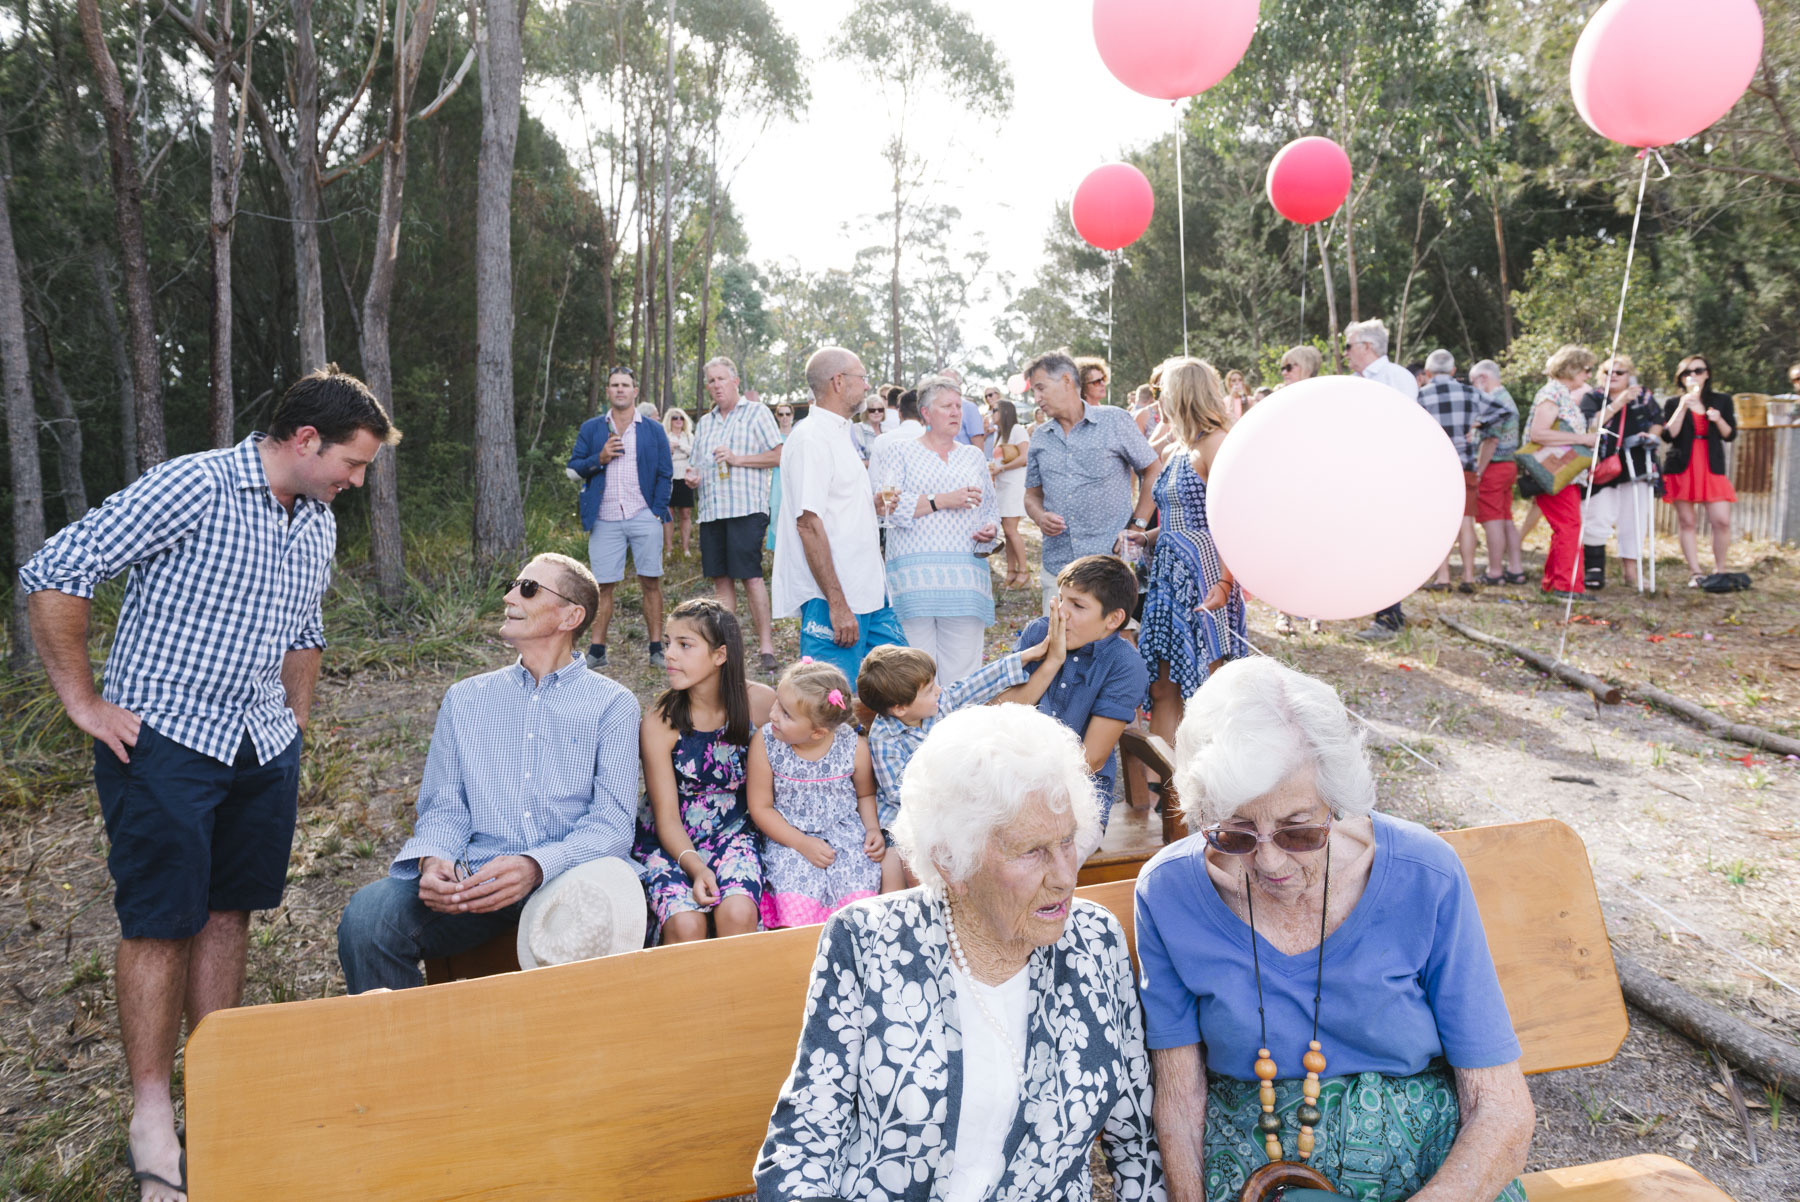 1501curchill-249alan_moyle_wedding_portrait_brighton_bayside_bay_of_fires_rustic_styled_rustic_beach_candid_documentry_binalongbay_tasmania_destination.jpg